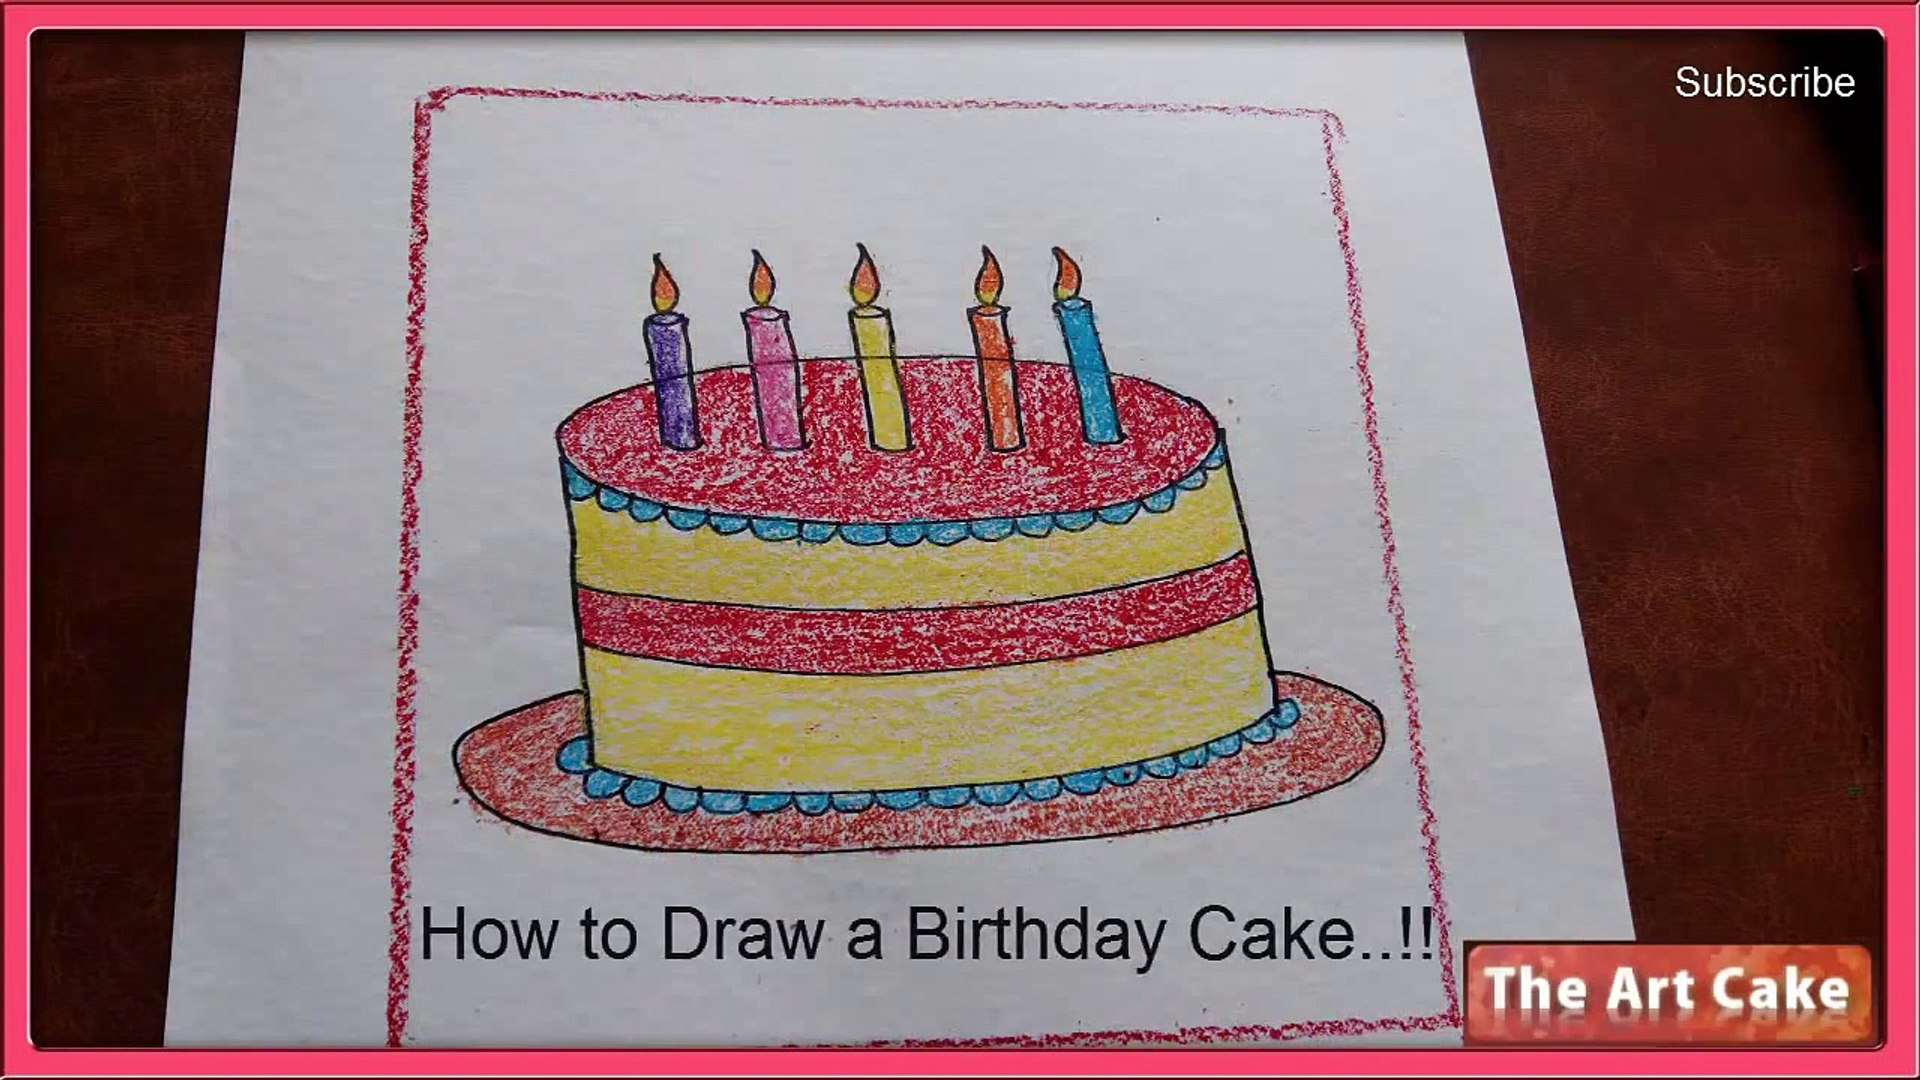 Pleasant How To Draw A Birthday Cake Birthday Cake Drawing For Kids Video Funny Birthday Cards Online Alyptdamsfinfo